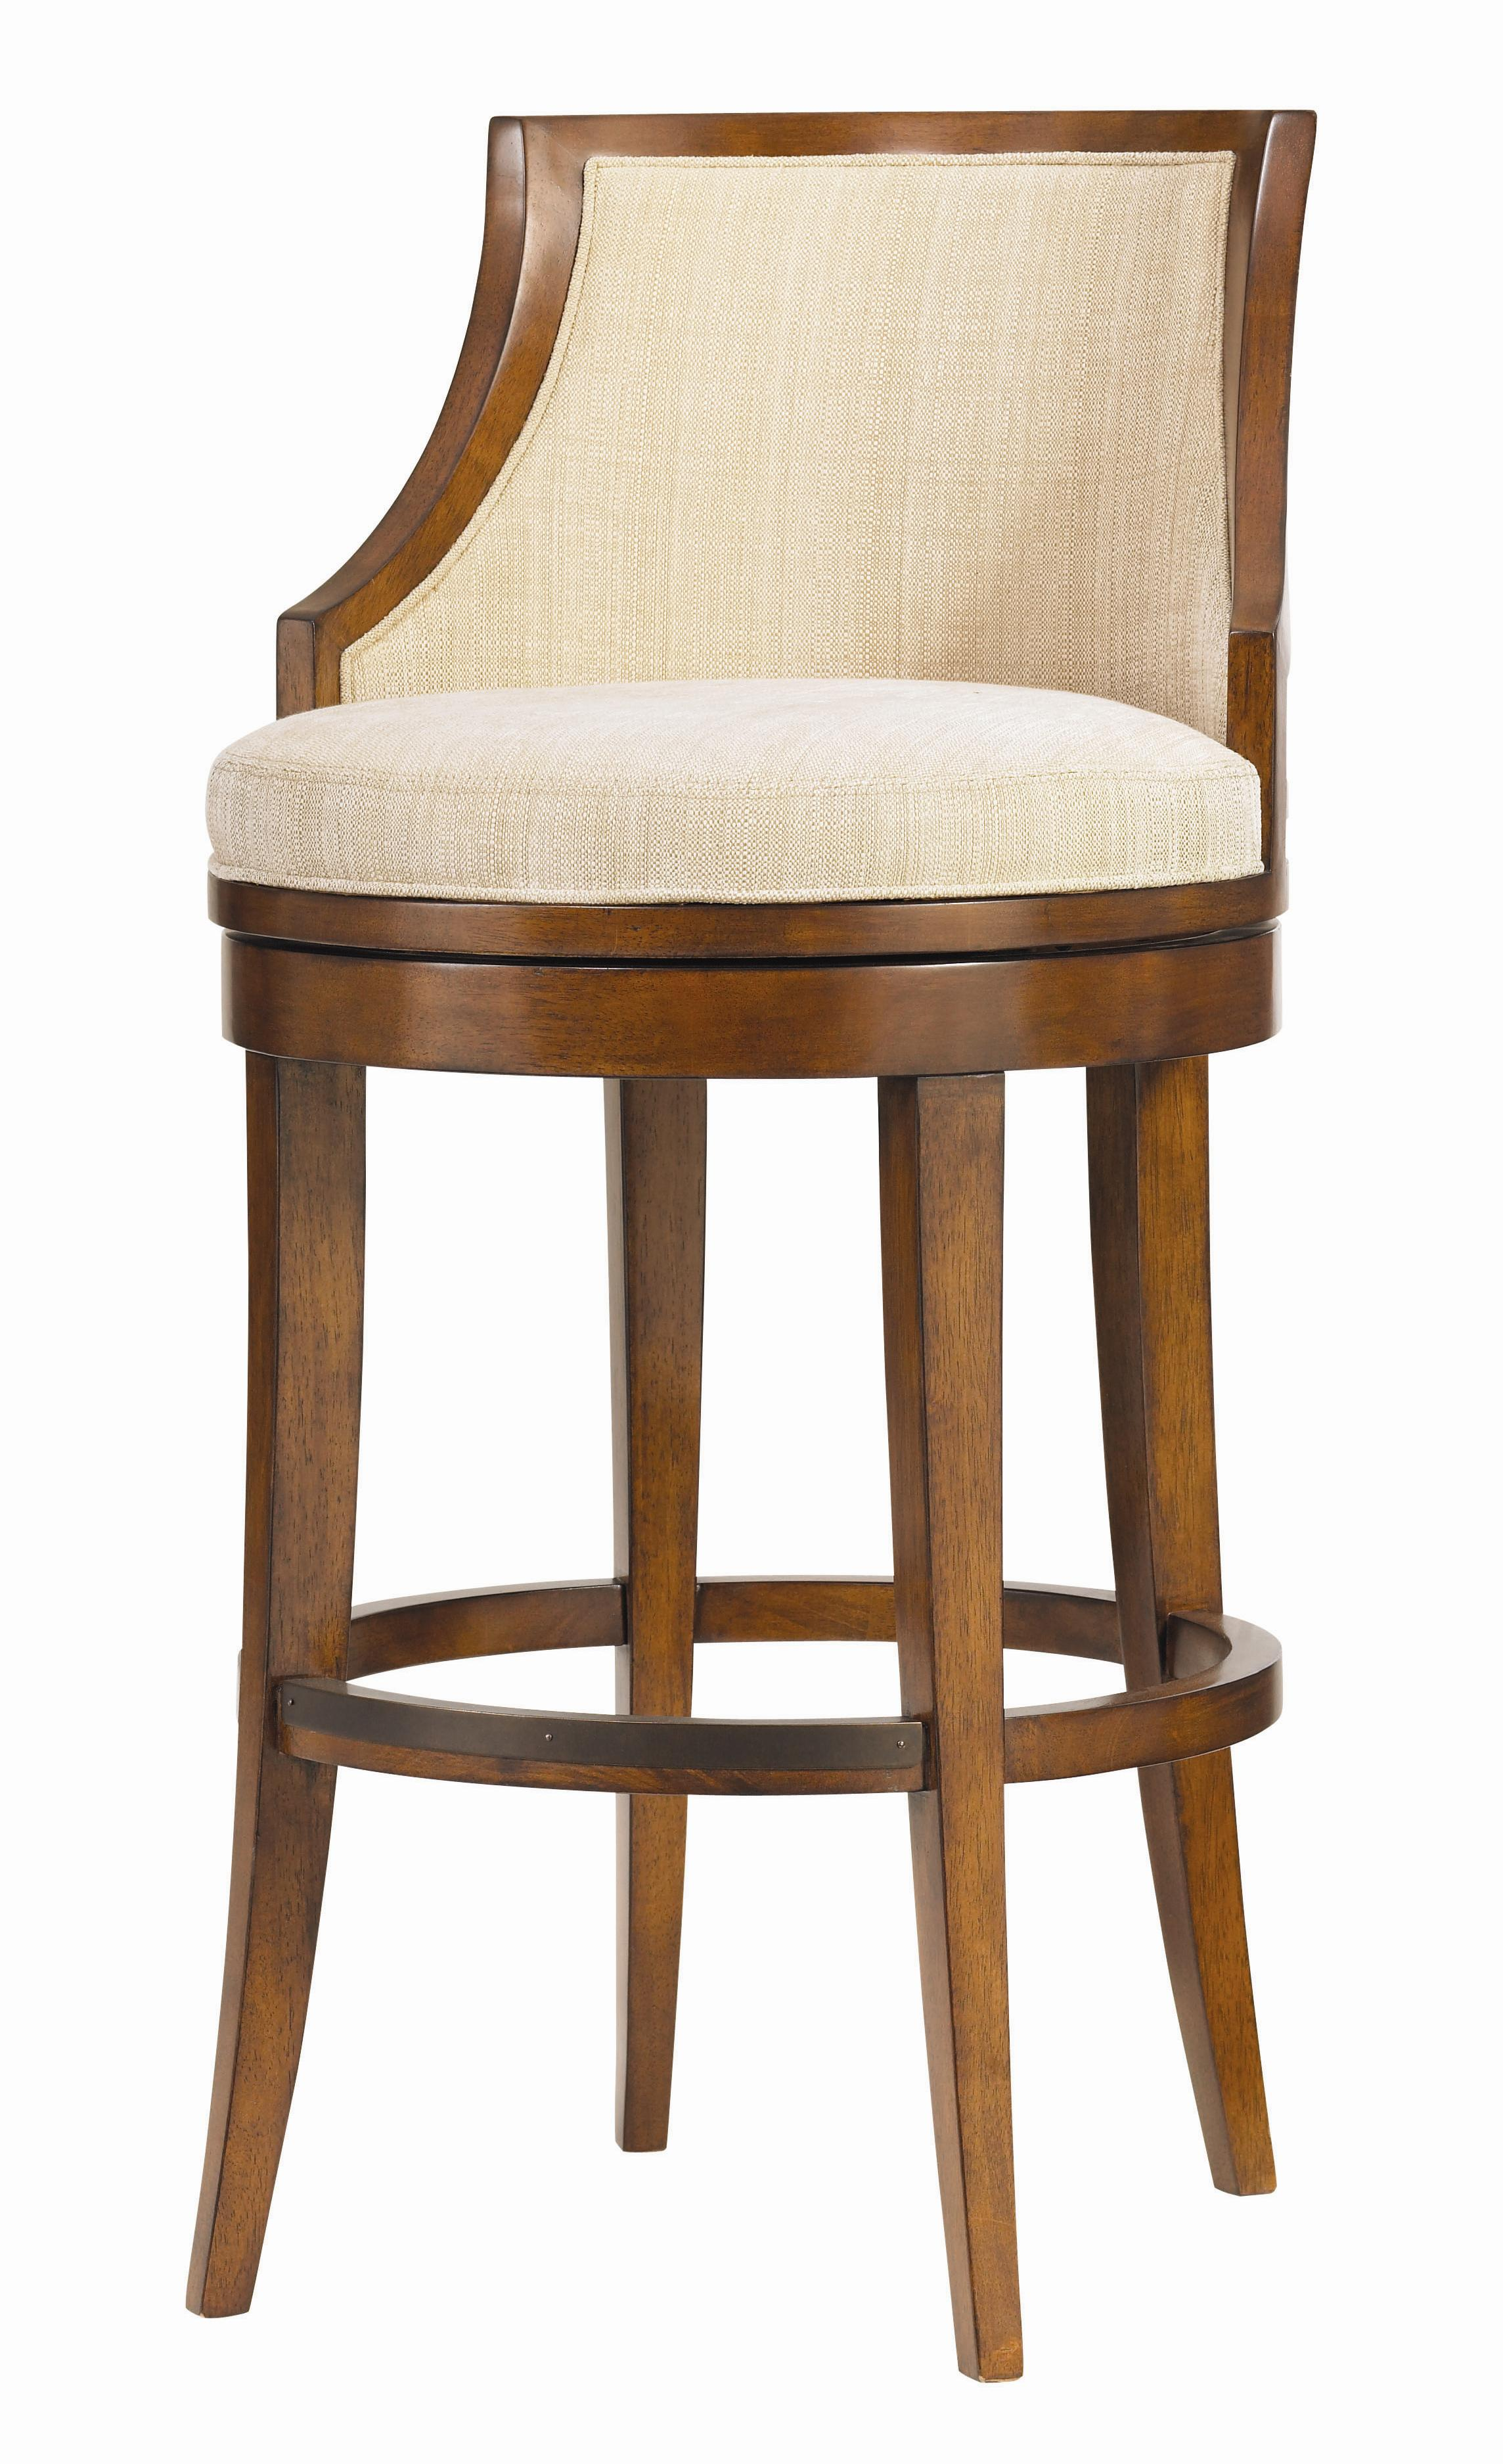 Tommy Bahama Home Ocean Club <b>Customizable</b> Cabana Bar Stool - Item Number: 536-816